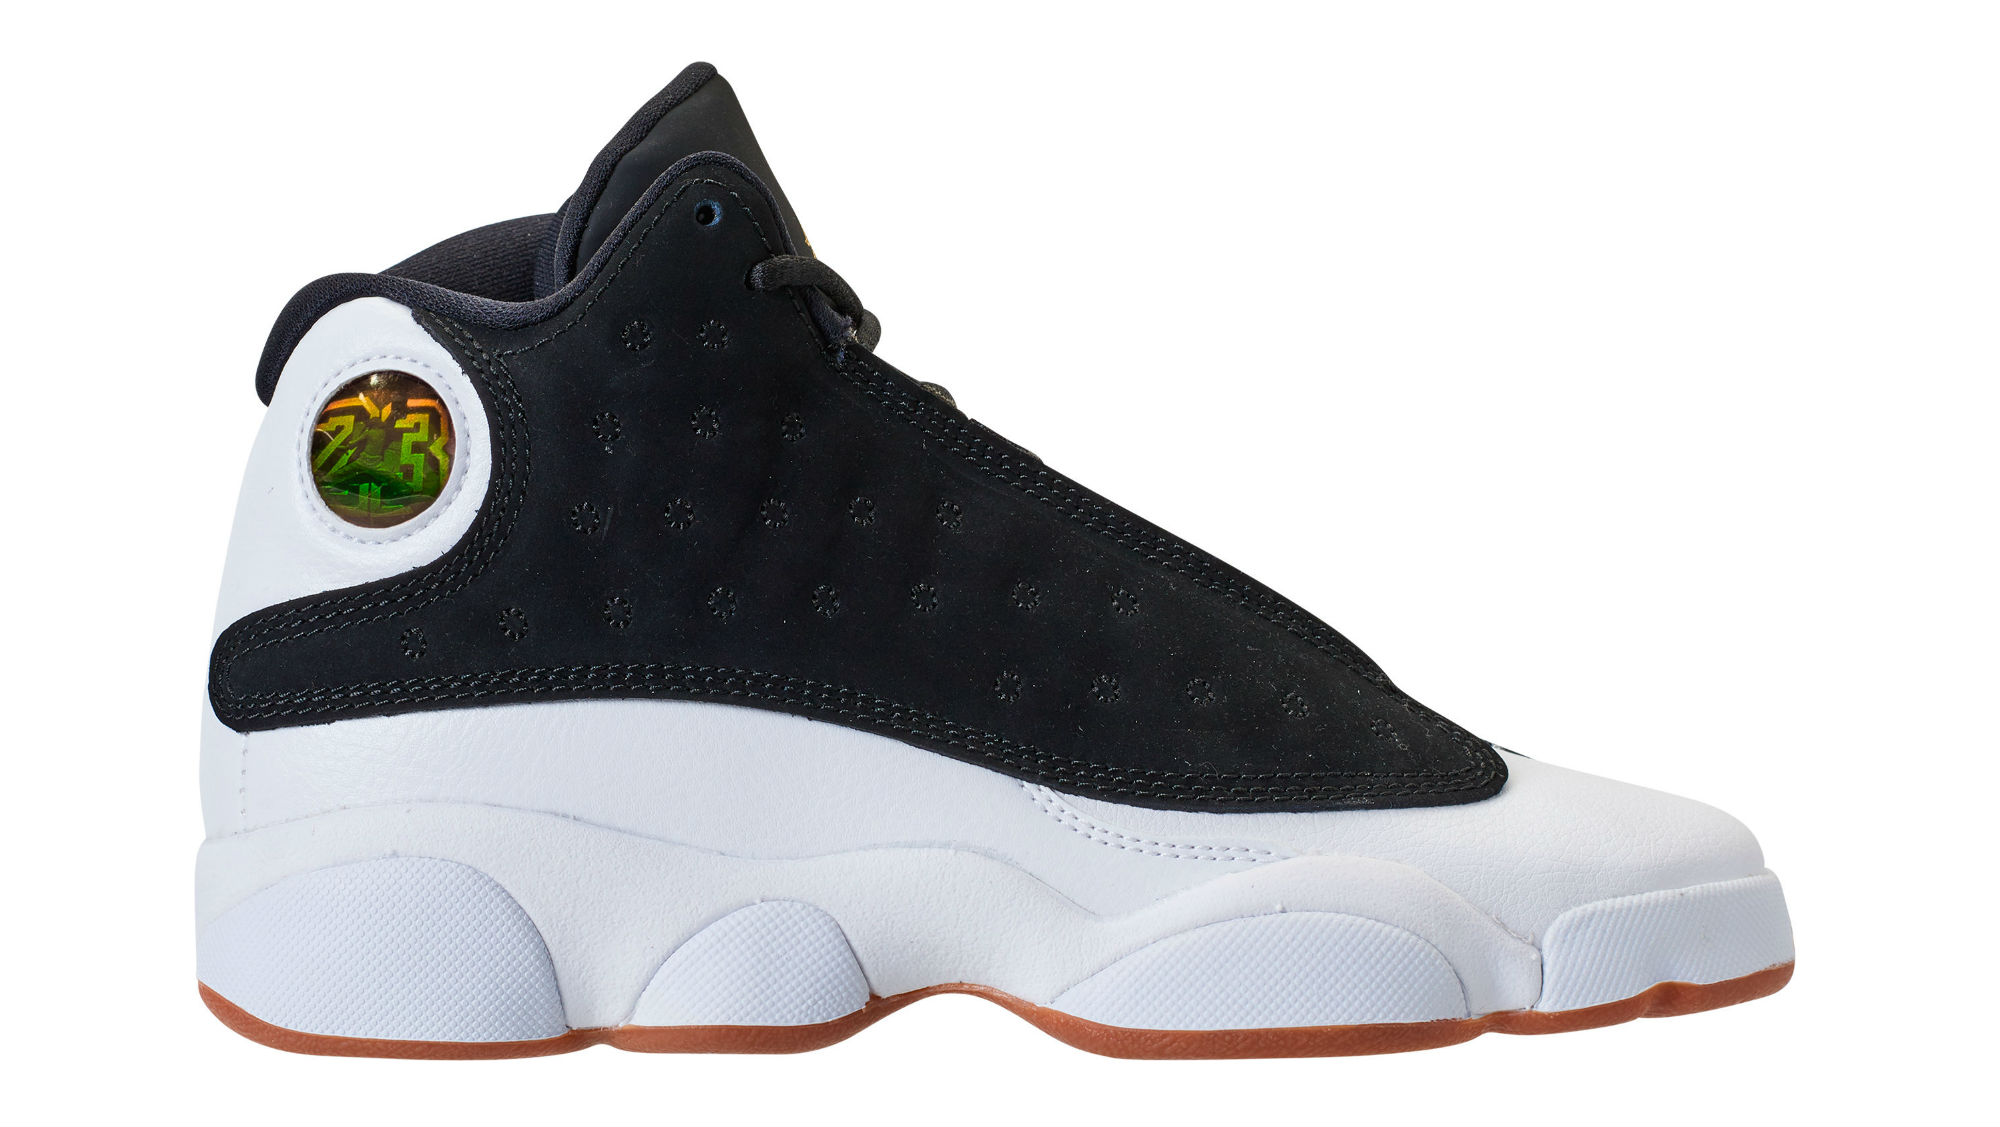 new concept a9bfc 2a370 Air Jordan 13 Girls Black Gold White Gum Release Date 439358-021   Sole  Collector